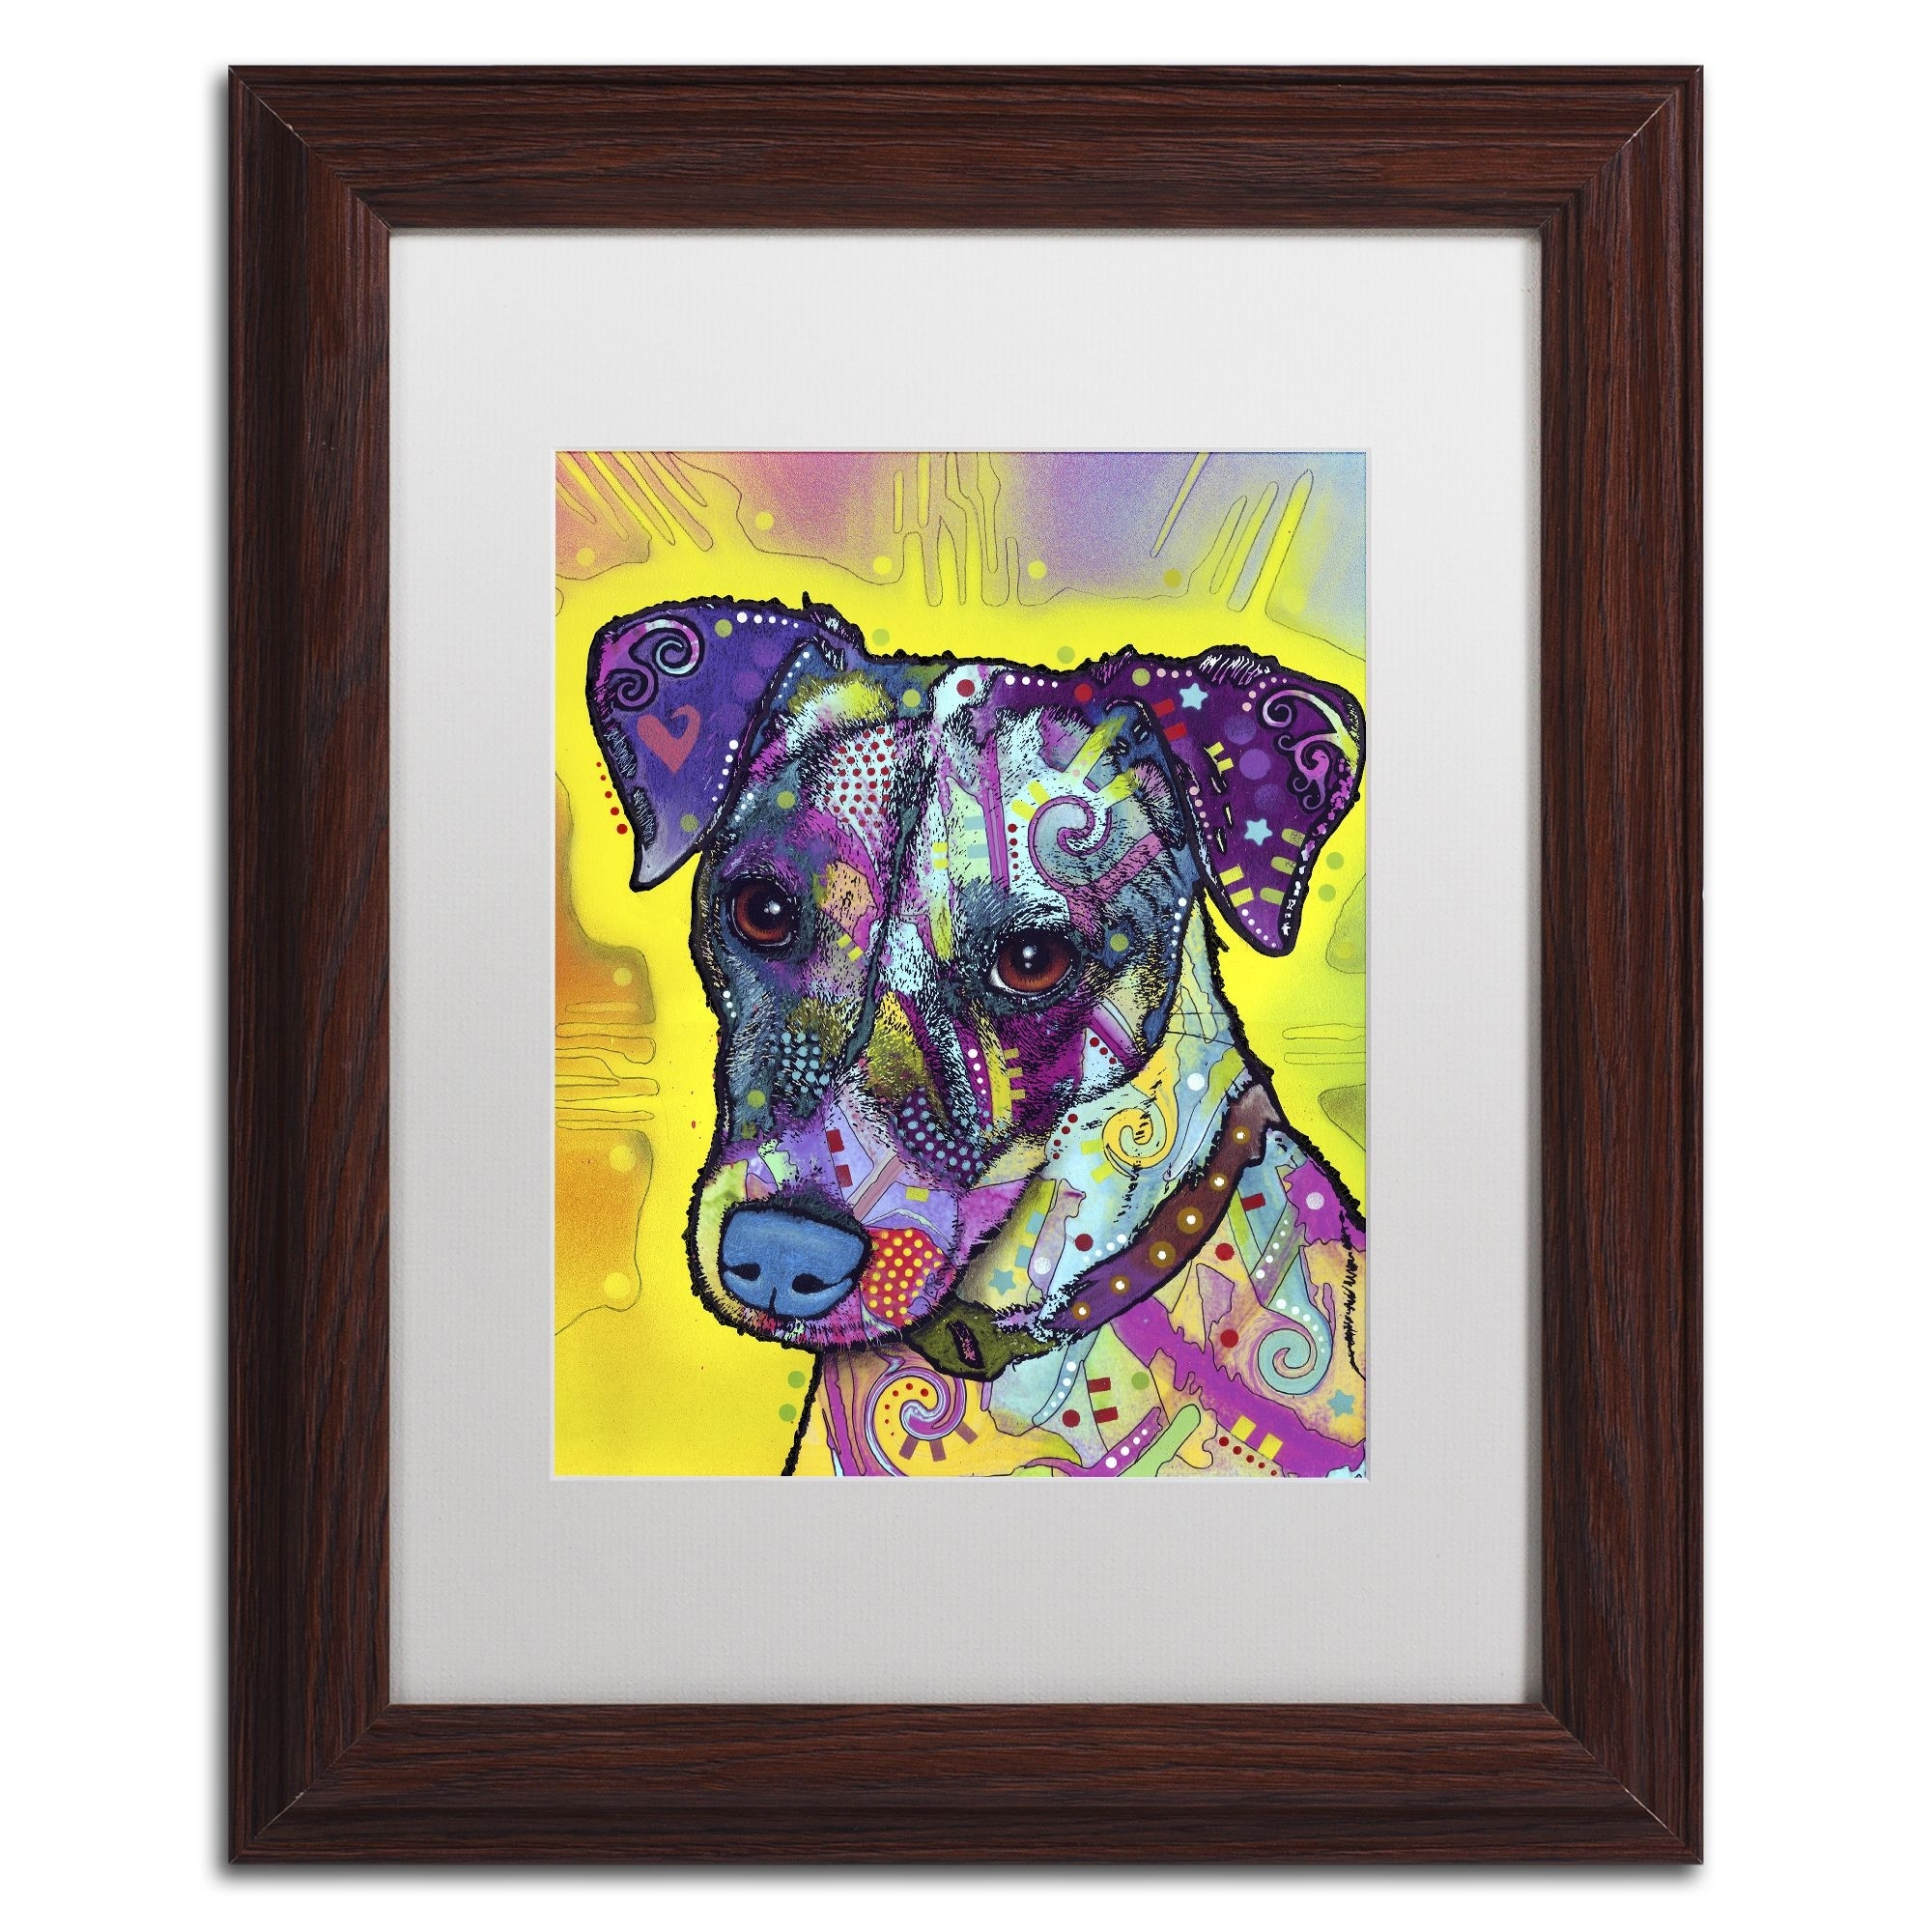 Dean Russo 'jack Russell' Matted Framed Art | Products | Pinterest with regard to Recent Dog Art Framed Prints